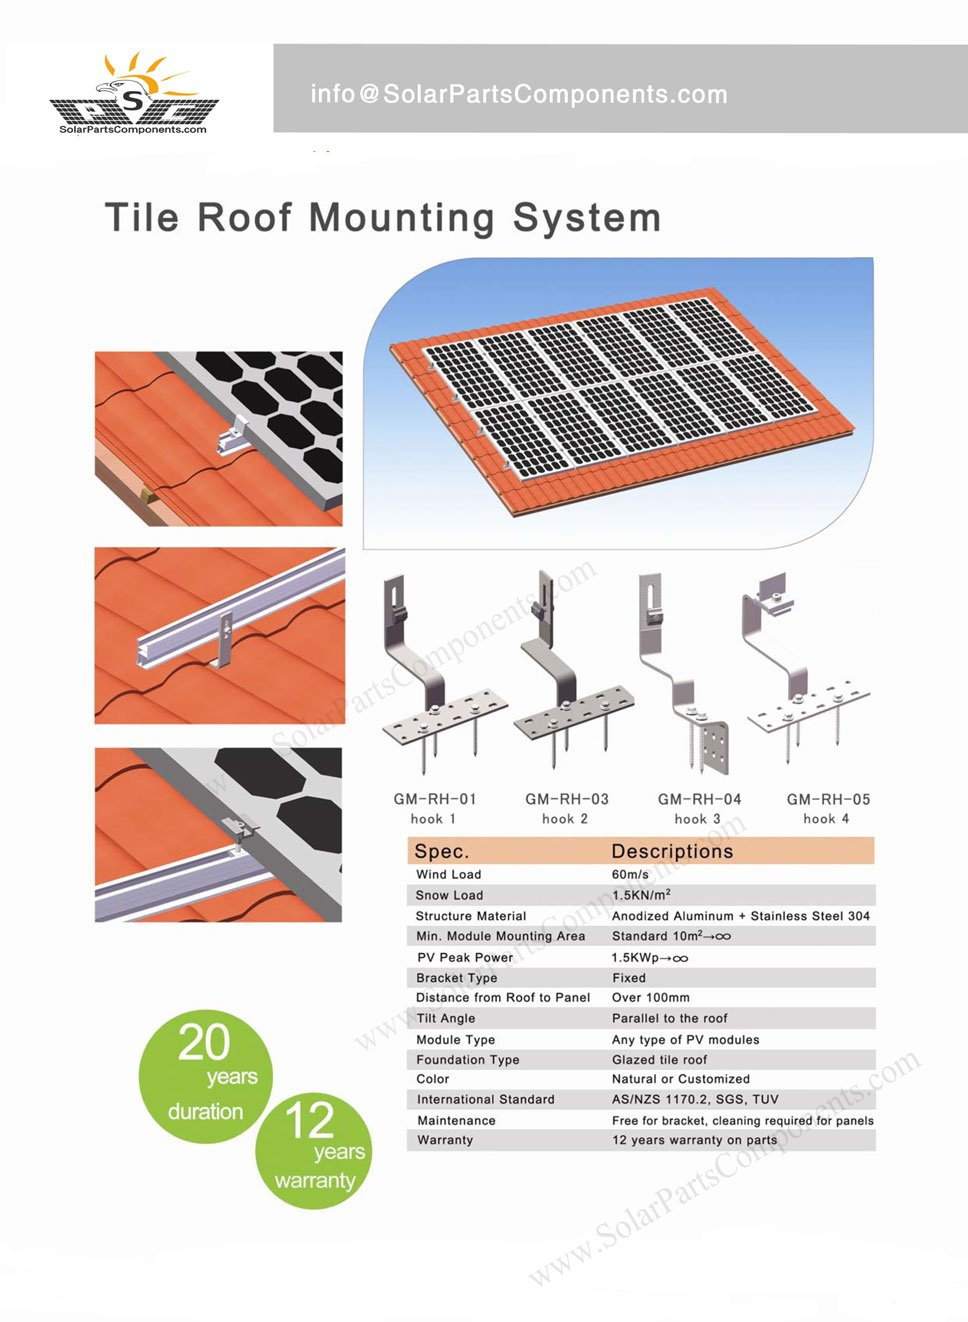 Solar Panel Tile Roof Mounting System